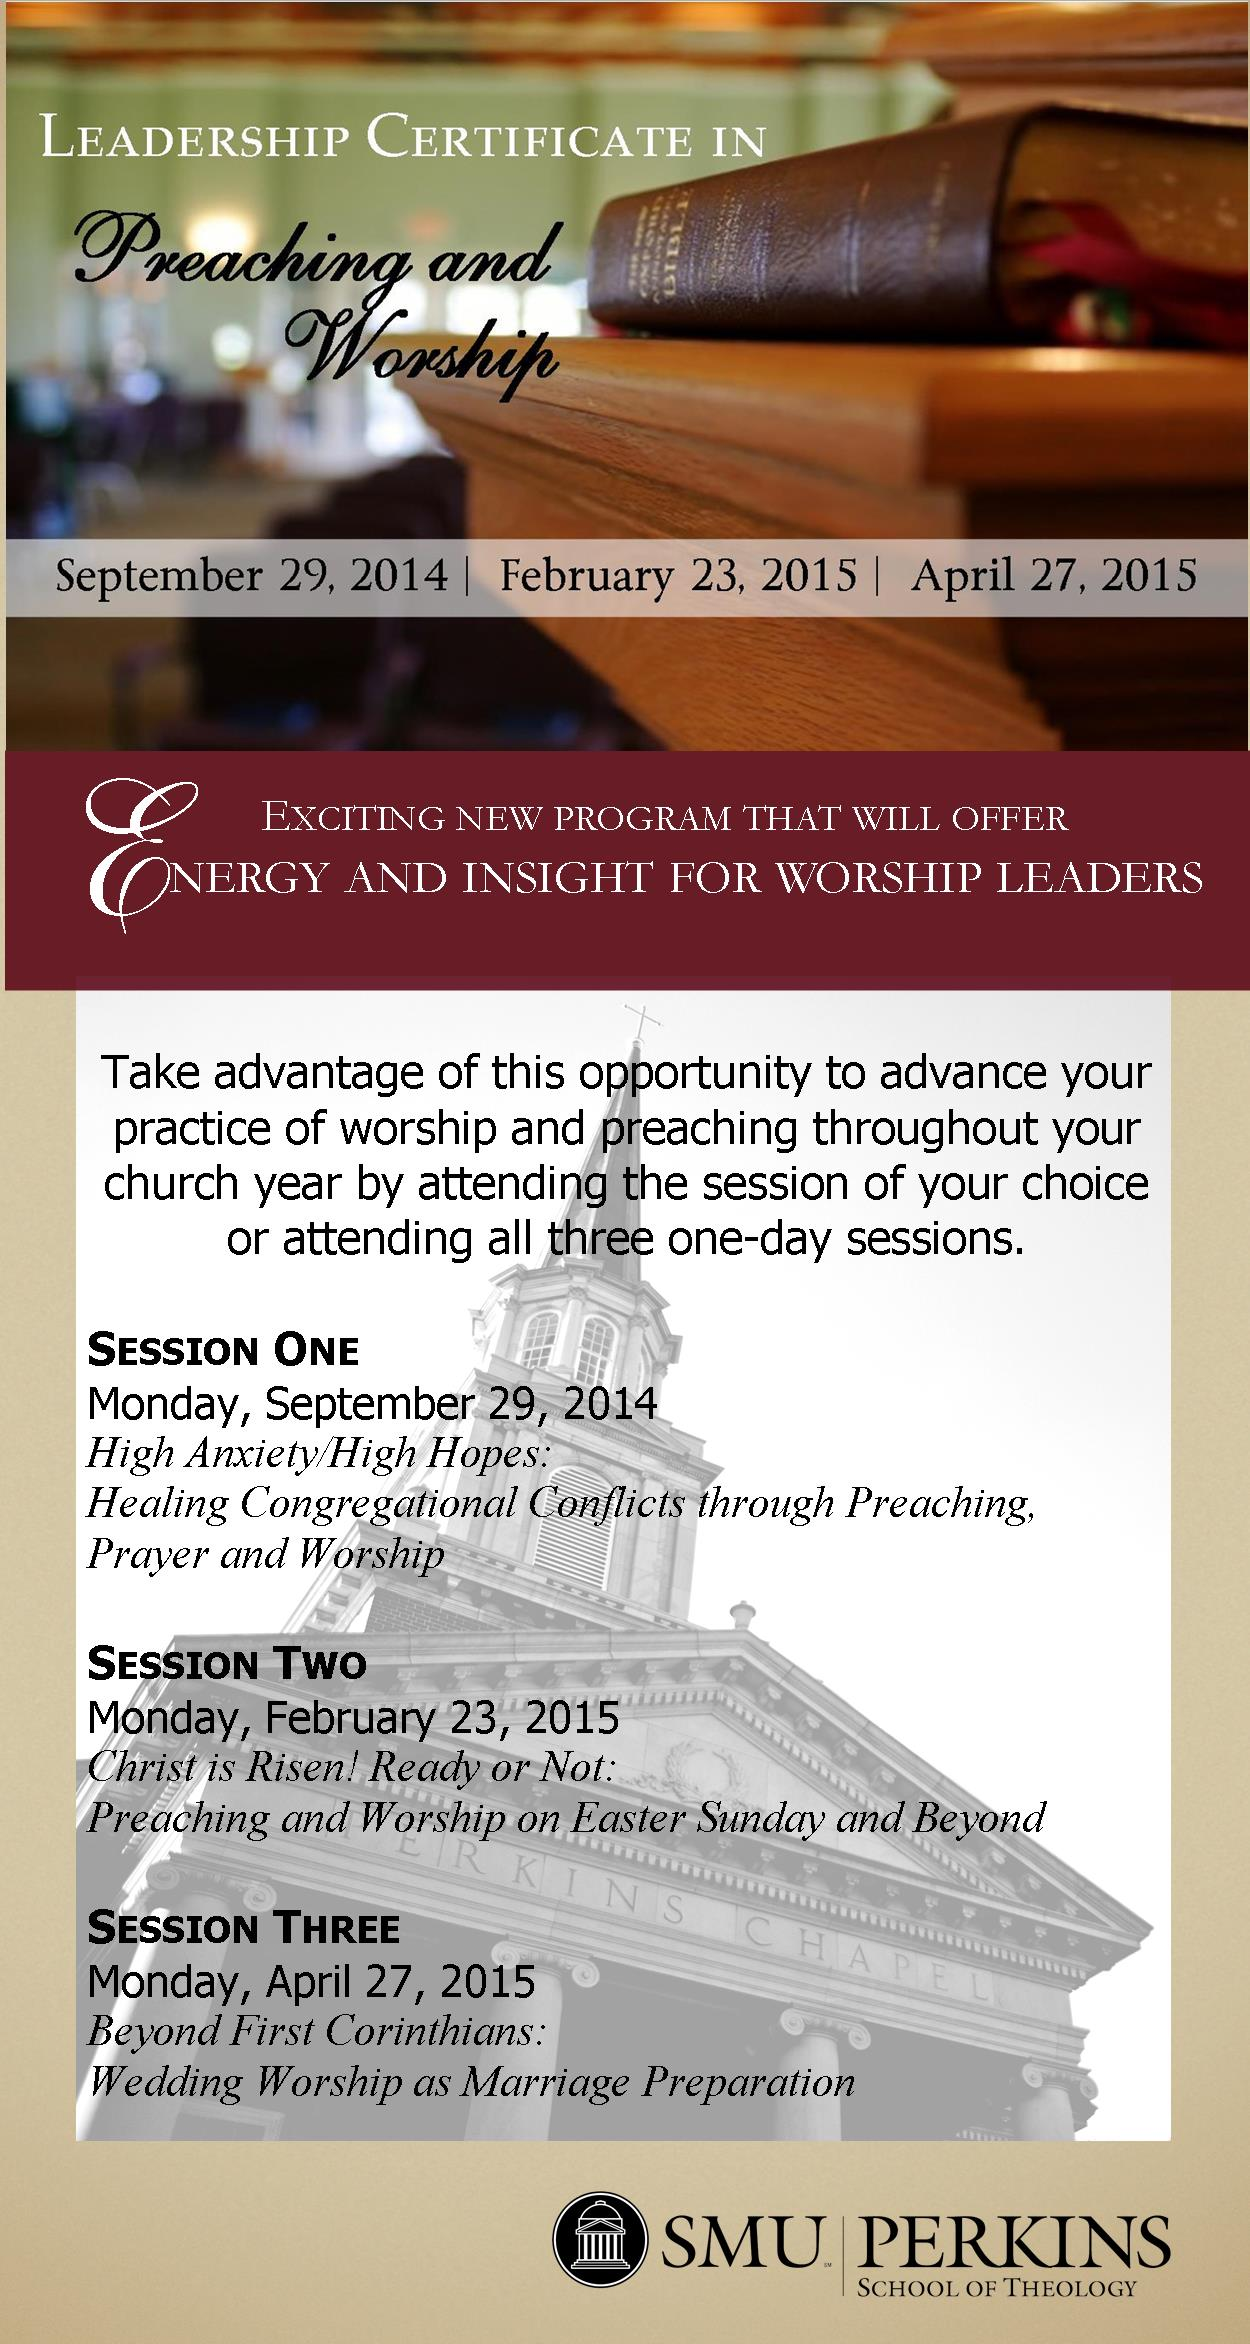 Leadership Certificate in Preaching and Worship | Perkins School of ...